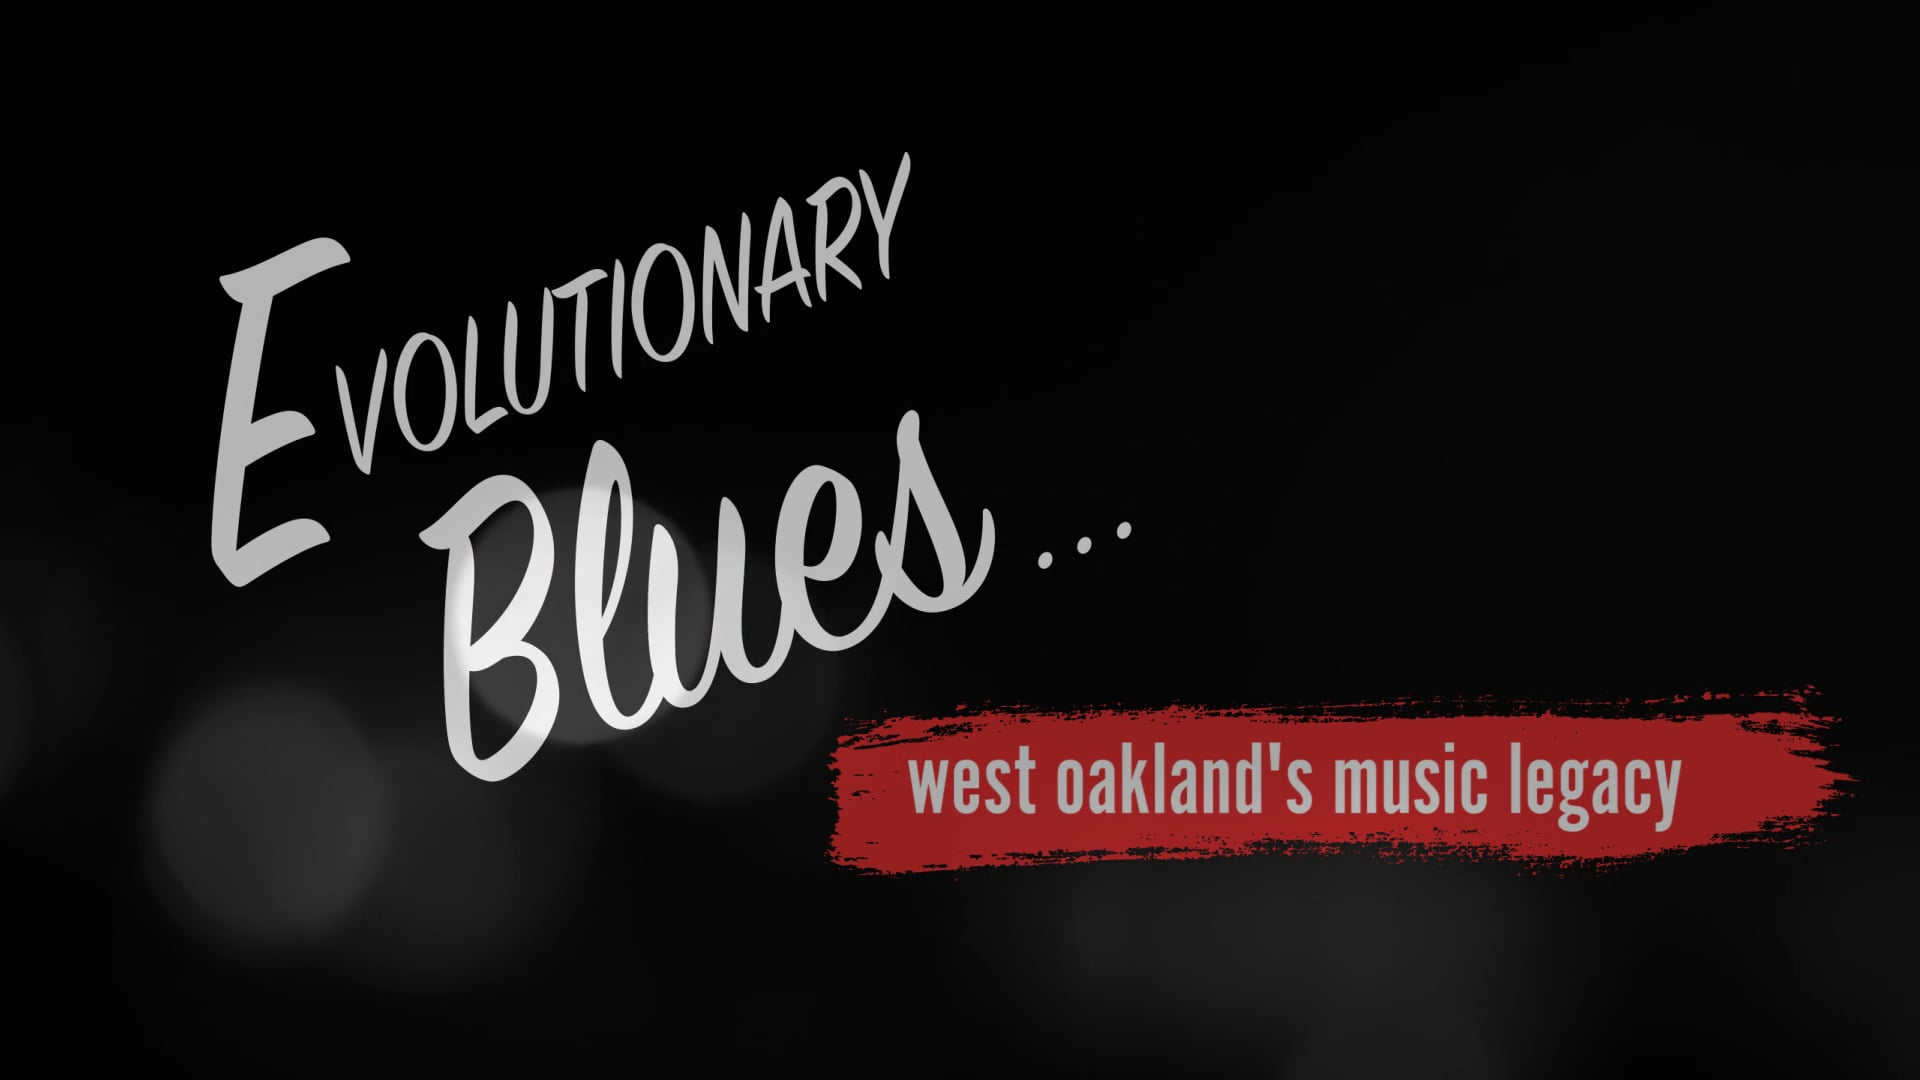 Evolutionary Blues... West Oakland's Music Legacy Trailer